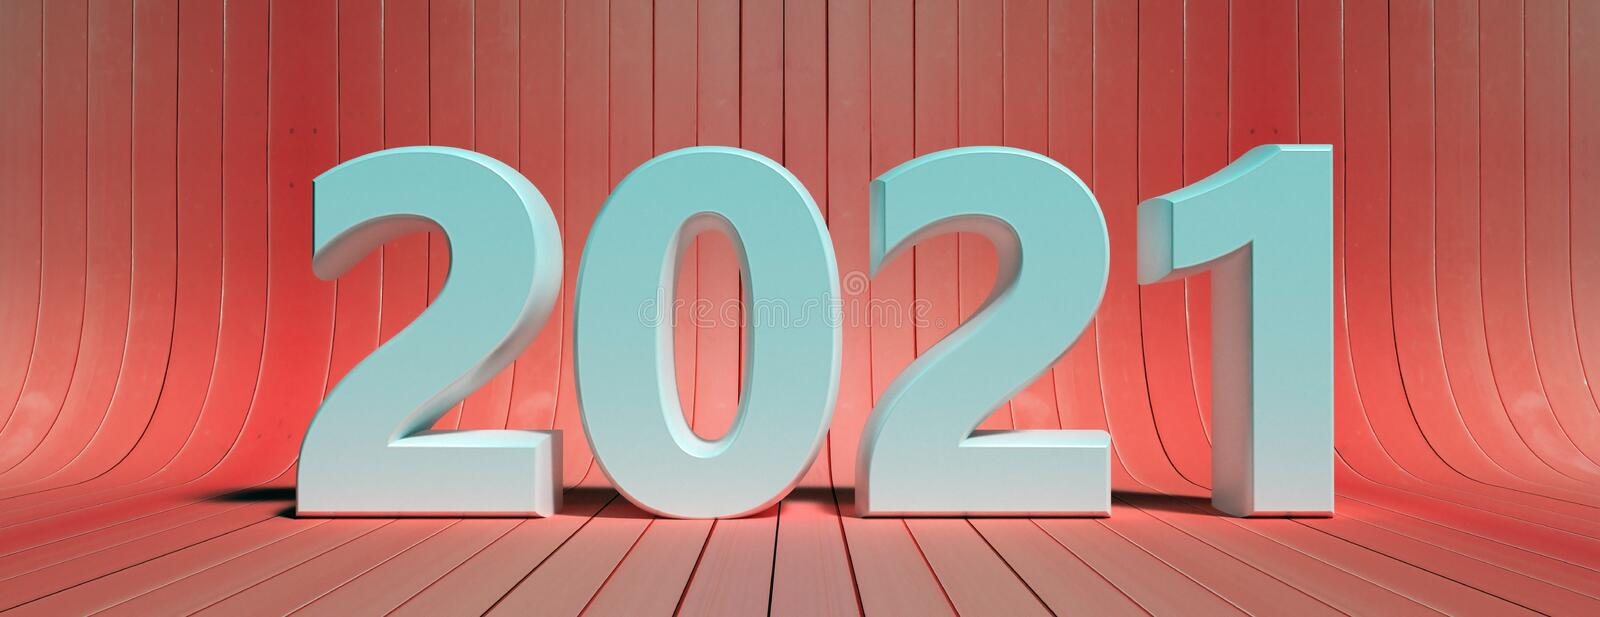 2021 New year against red wood background. 3d illustration royalty free illustration